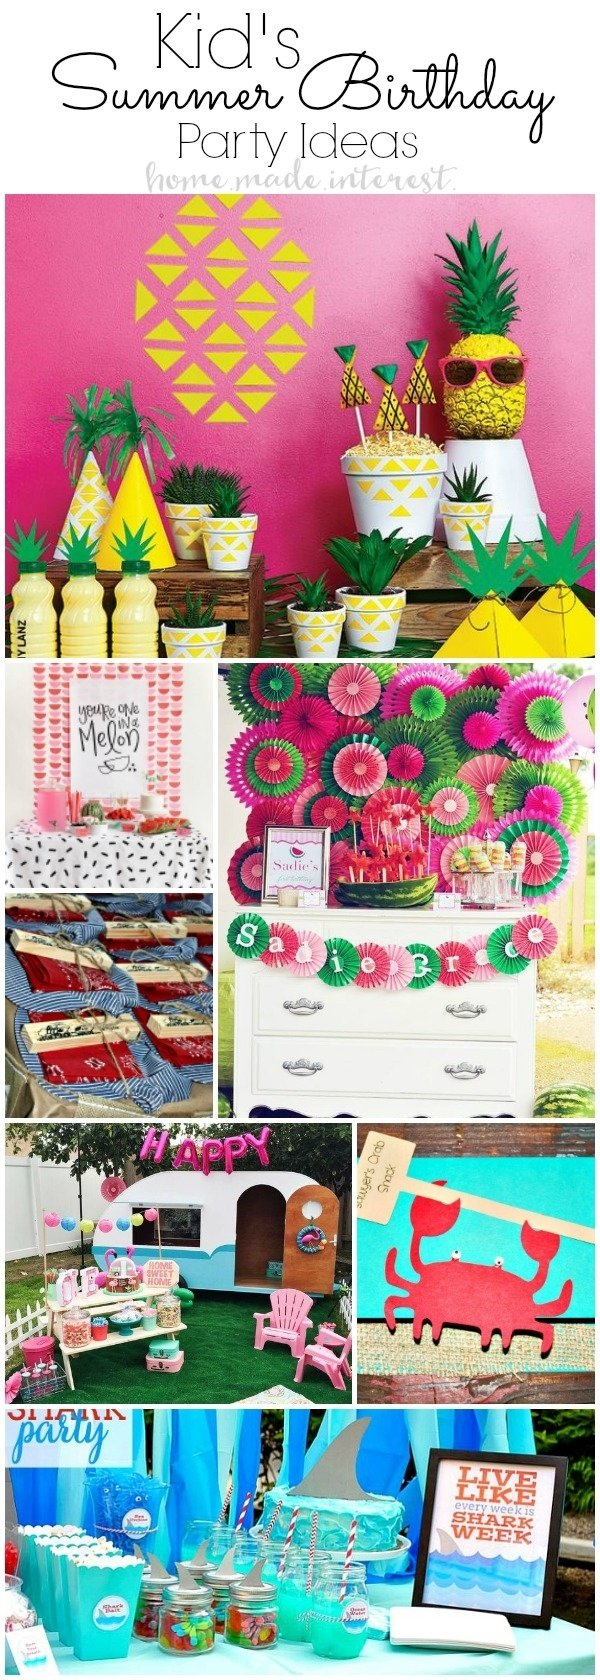 10 Nice Summer Party Ideas For Kids